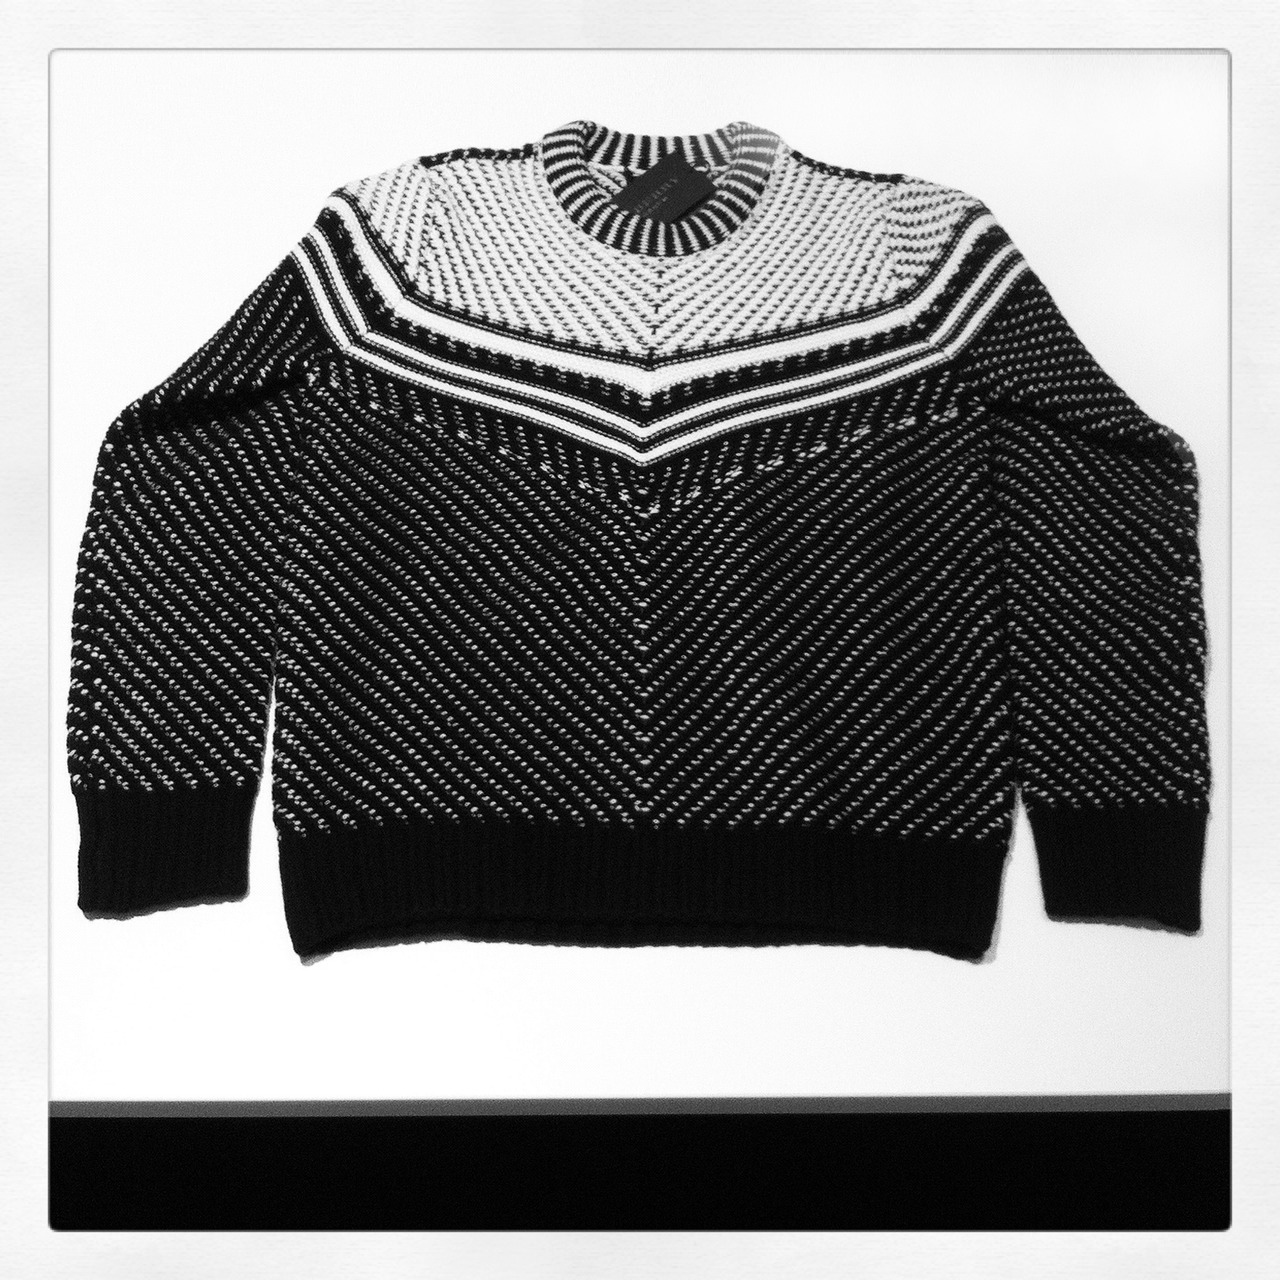 In need of a Monday boost? This handsome patterned knit by BURBERRY PRORSUM should do the trick. BUY it at: http://bit.ly/UNwkRd